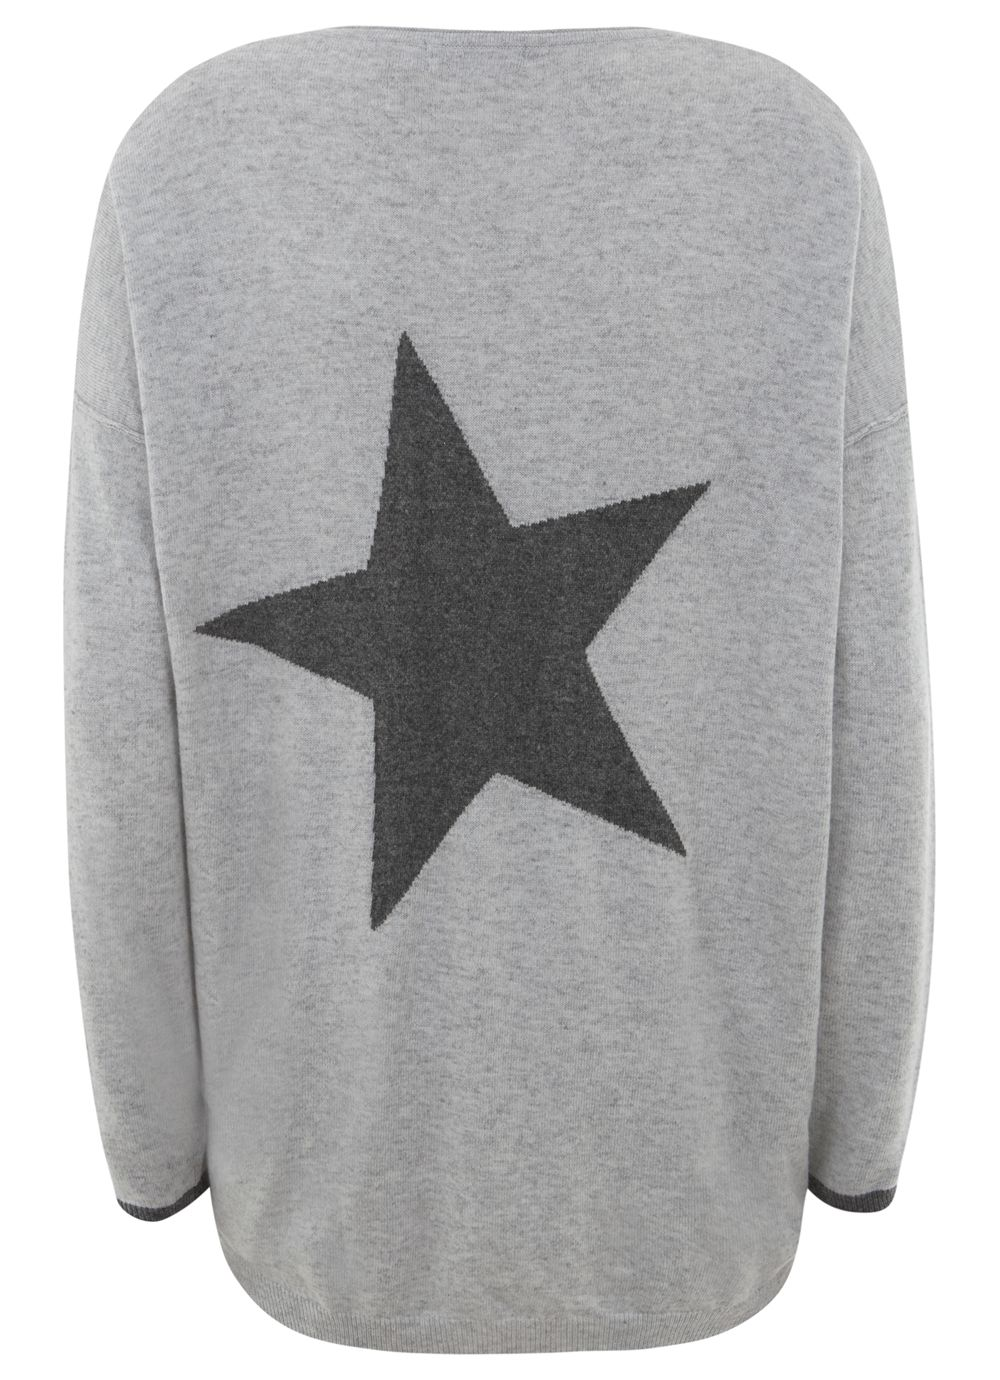 Silver & Granite Star Knit